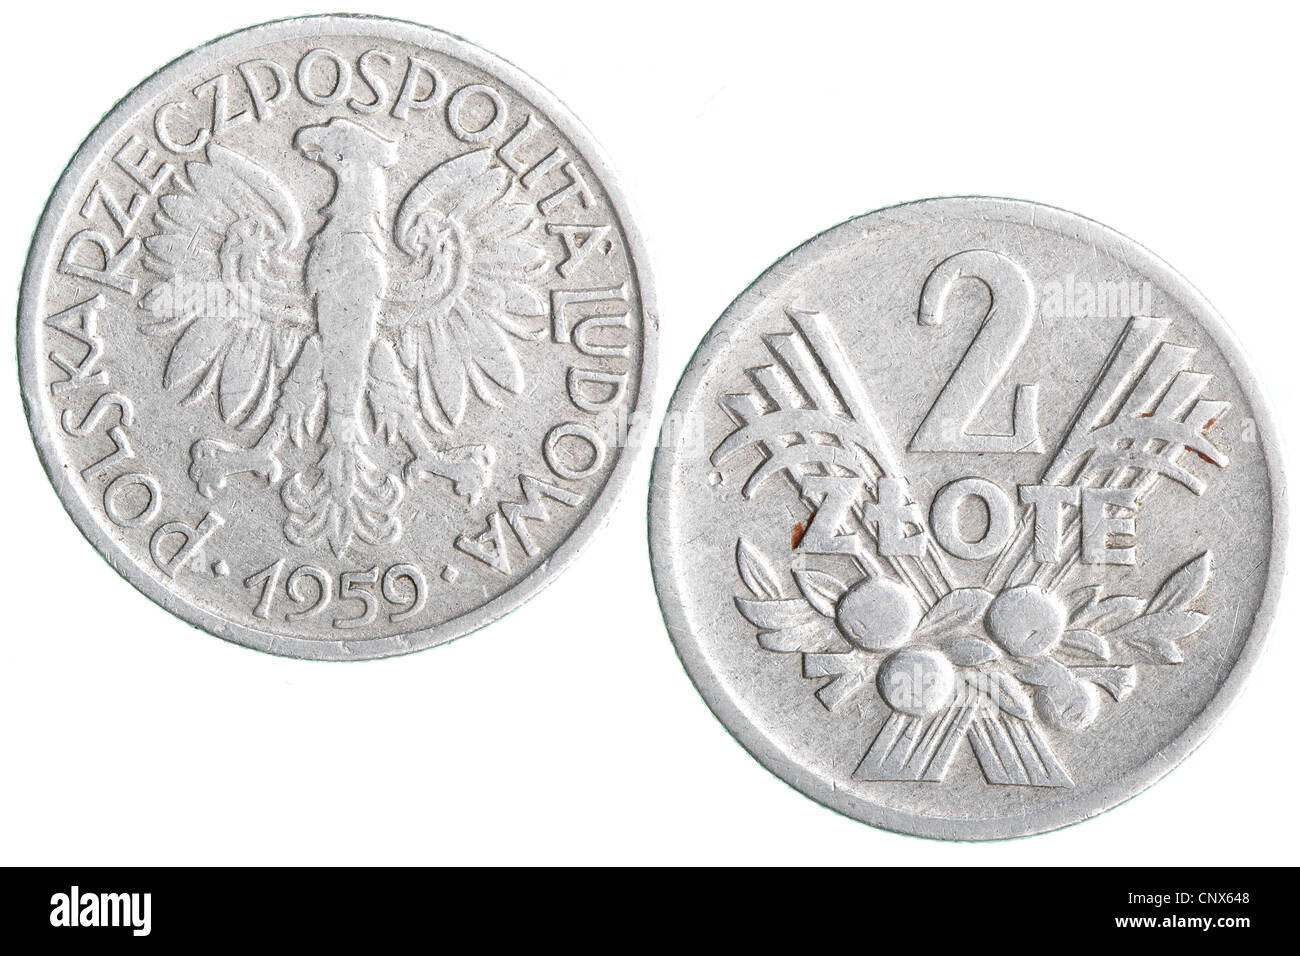 Coins Front And Back Stock Photos Amp Coins Front And Back Stock Images